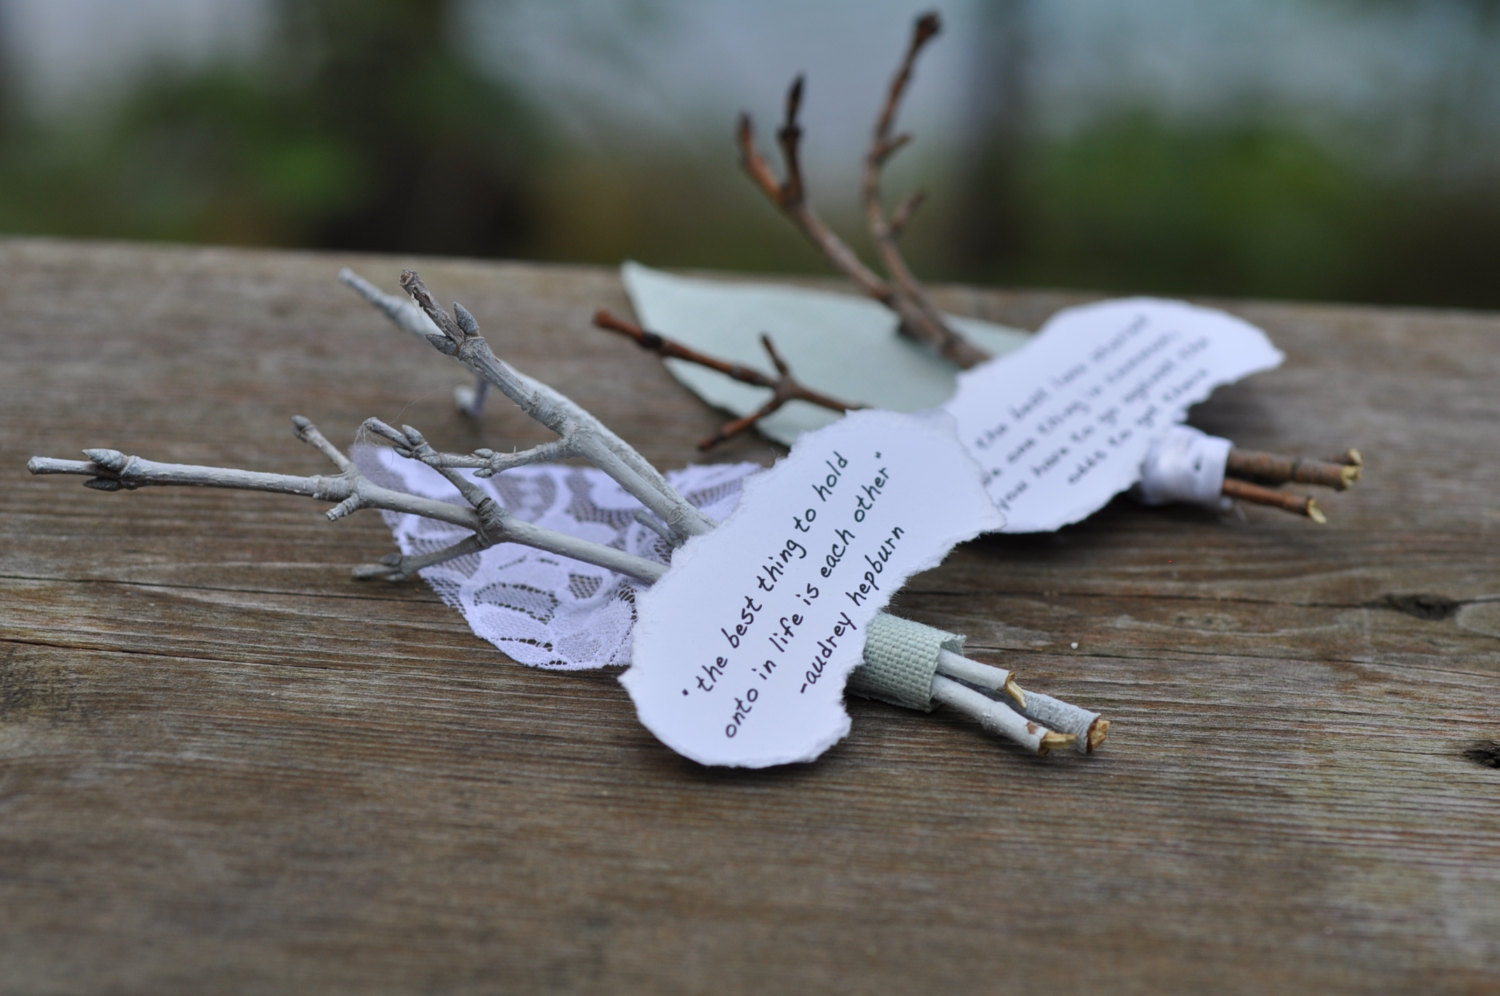 twig boutonniere by lace and twig | Nature Inspired Wedding Ideas | http://wp.me/p1g0if-x0y